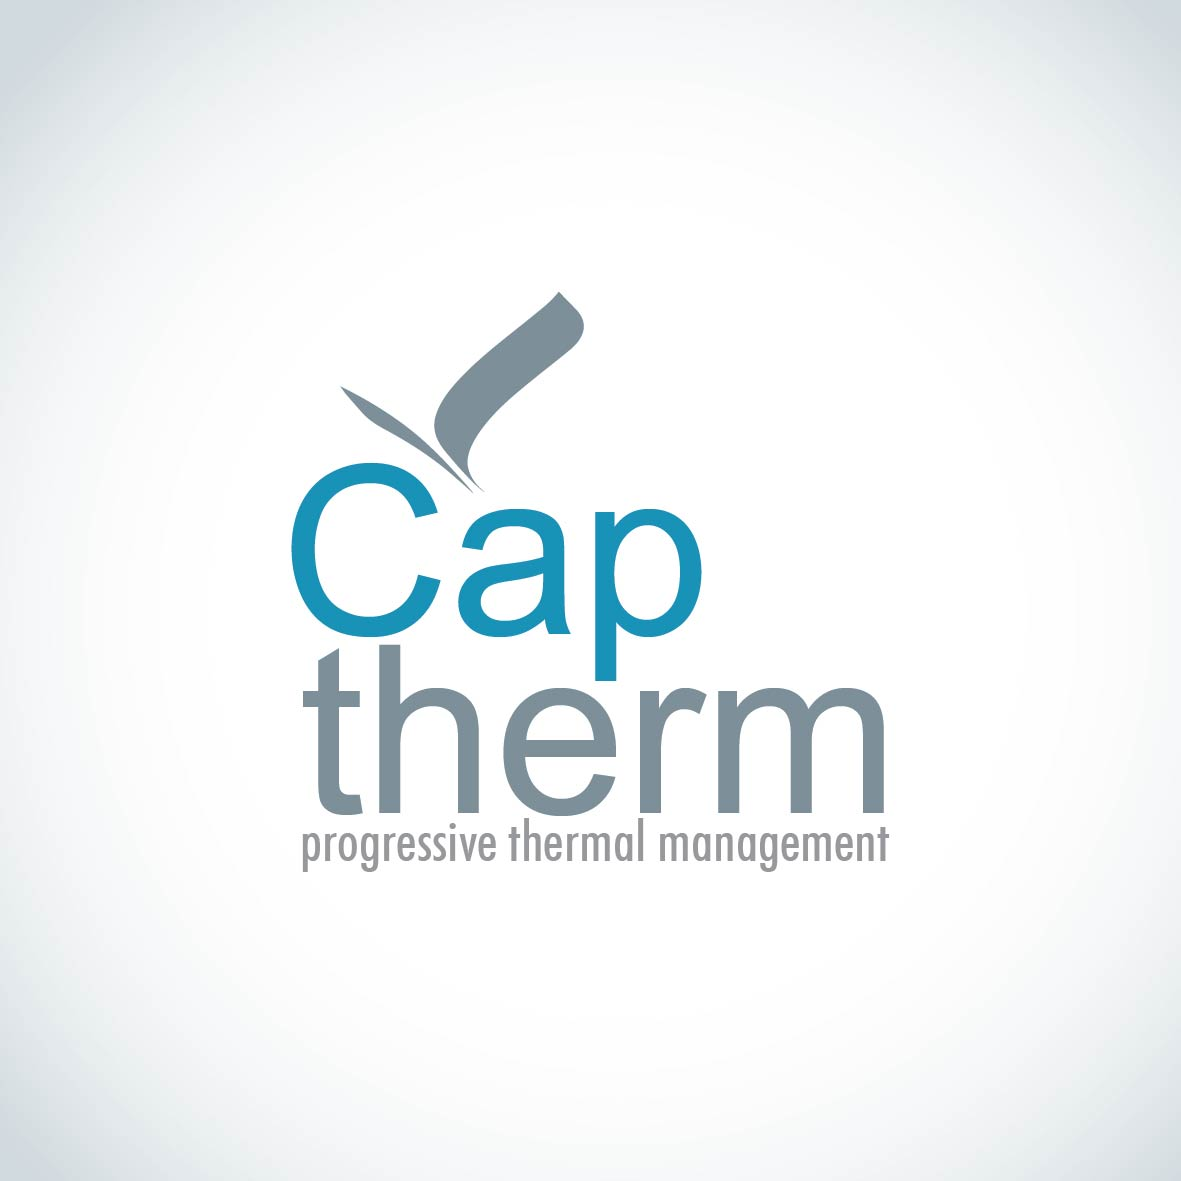 Logo Design by aesthetic-art - Entry No. 10 in the Logo Design Contest CapTherm Logo.